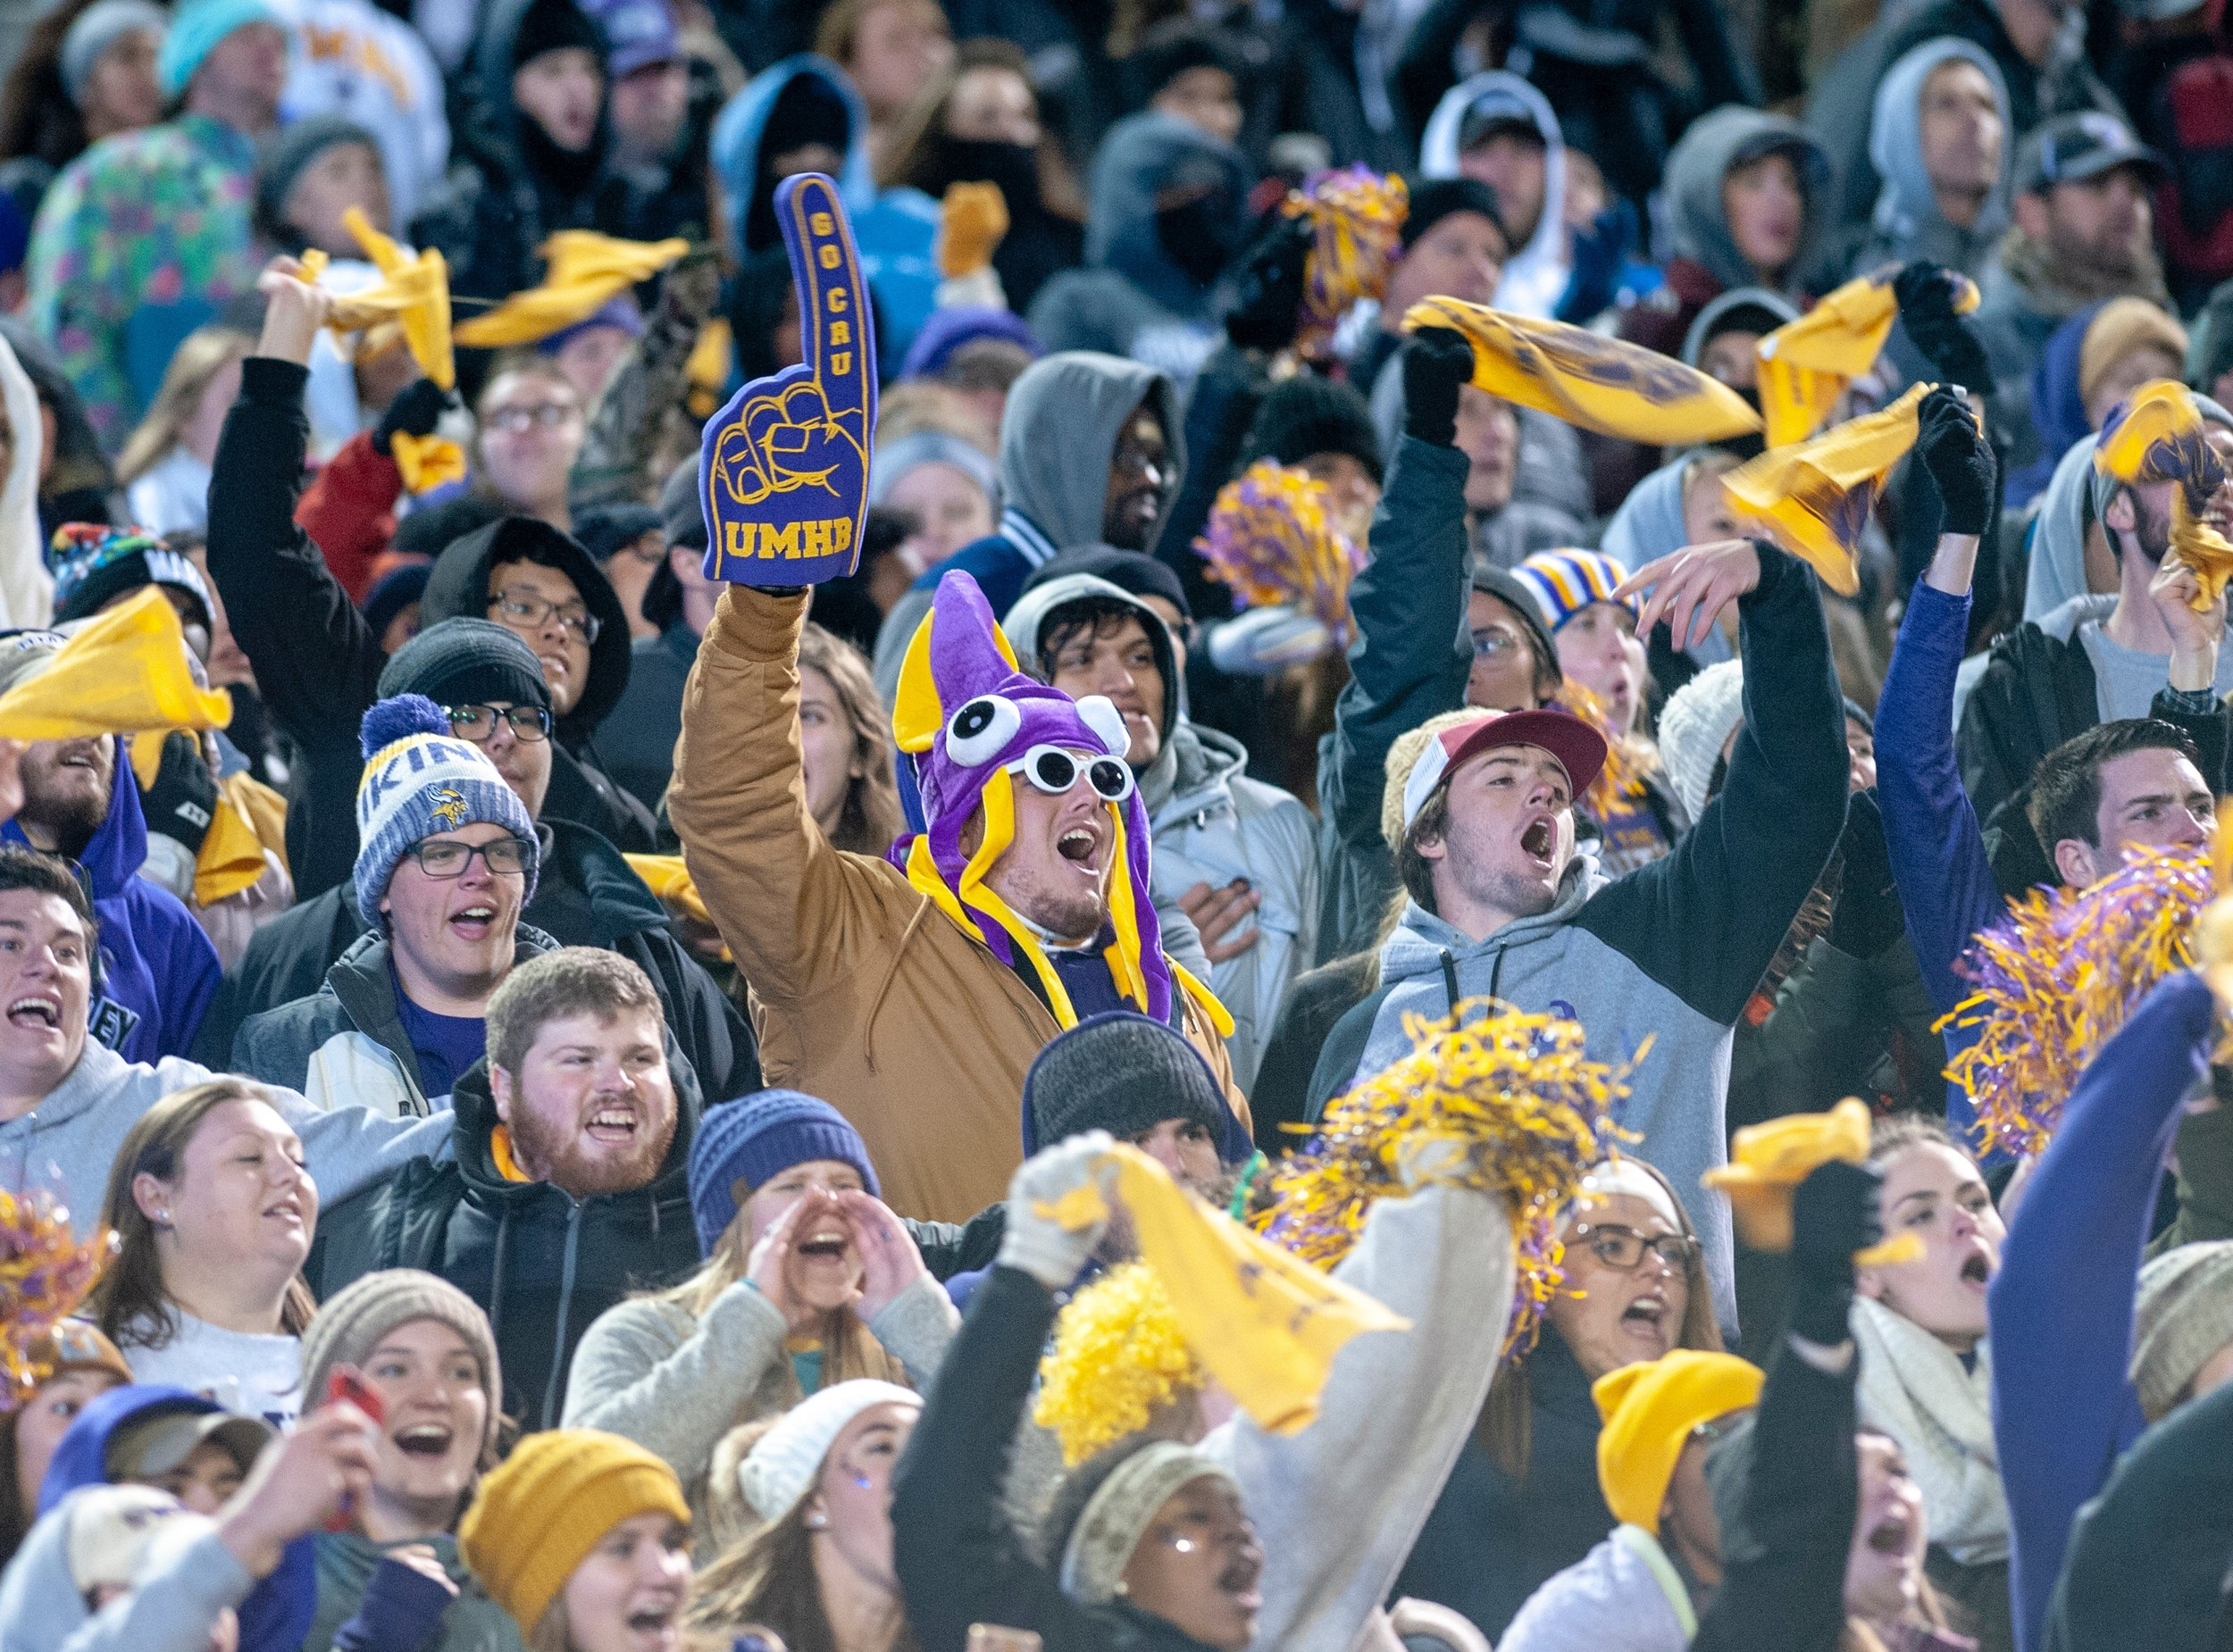 celebration-crowd-fans-2190115.jpg